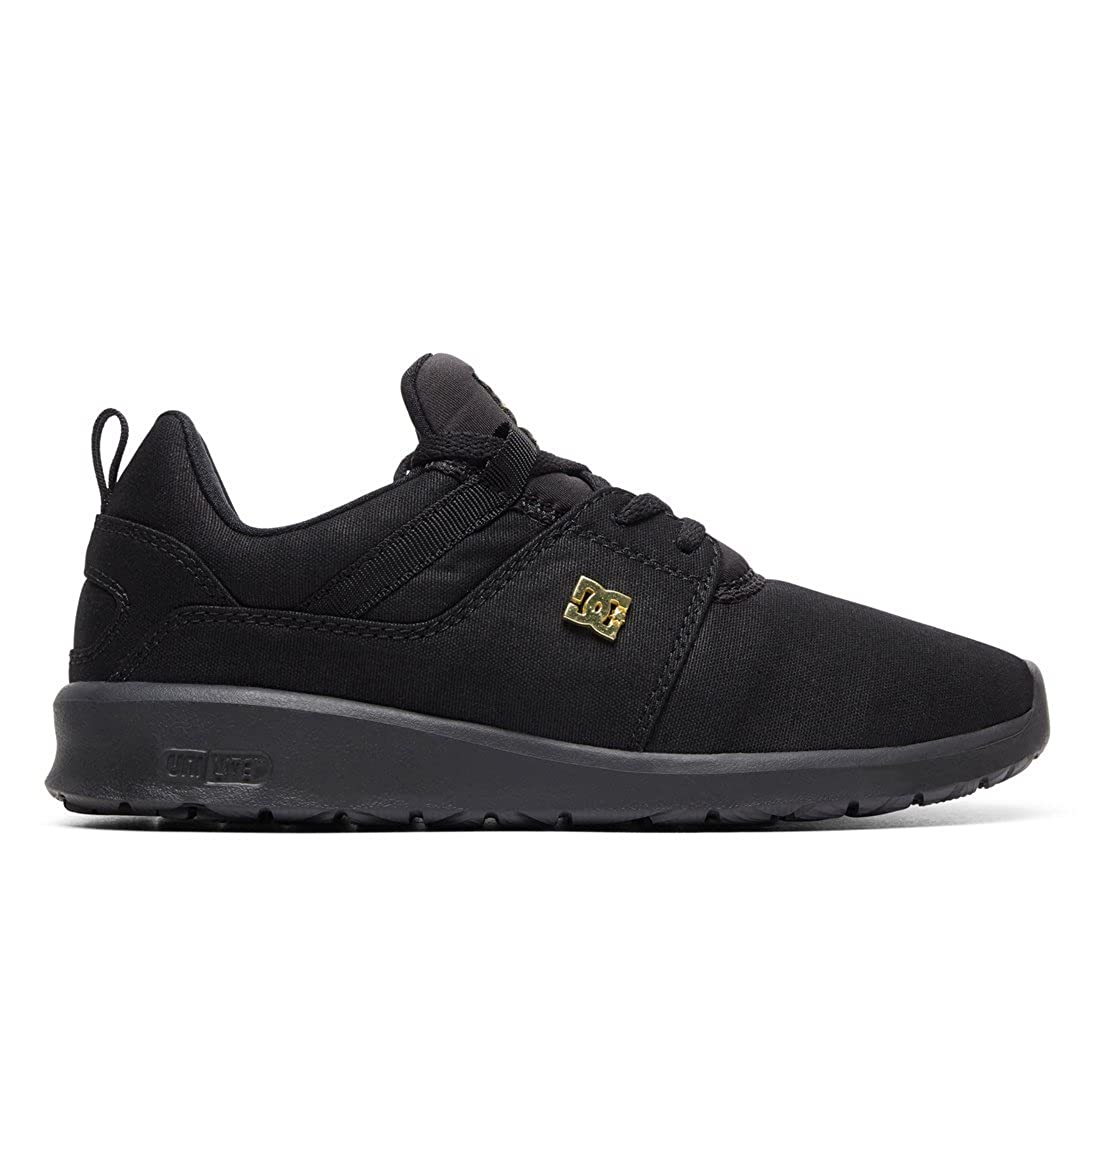 TALLA 38.5 EU. DC Shoes Heathrow TX Se, Zapatillas de Skateboard para Mujer